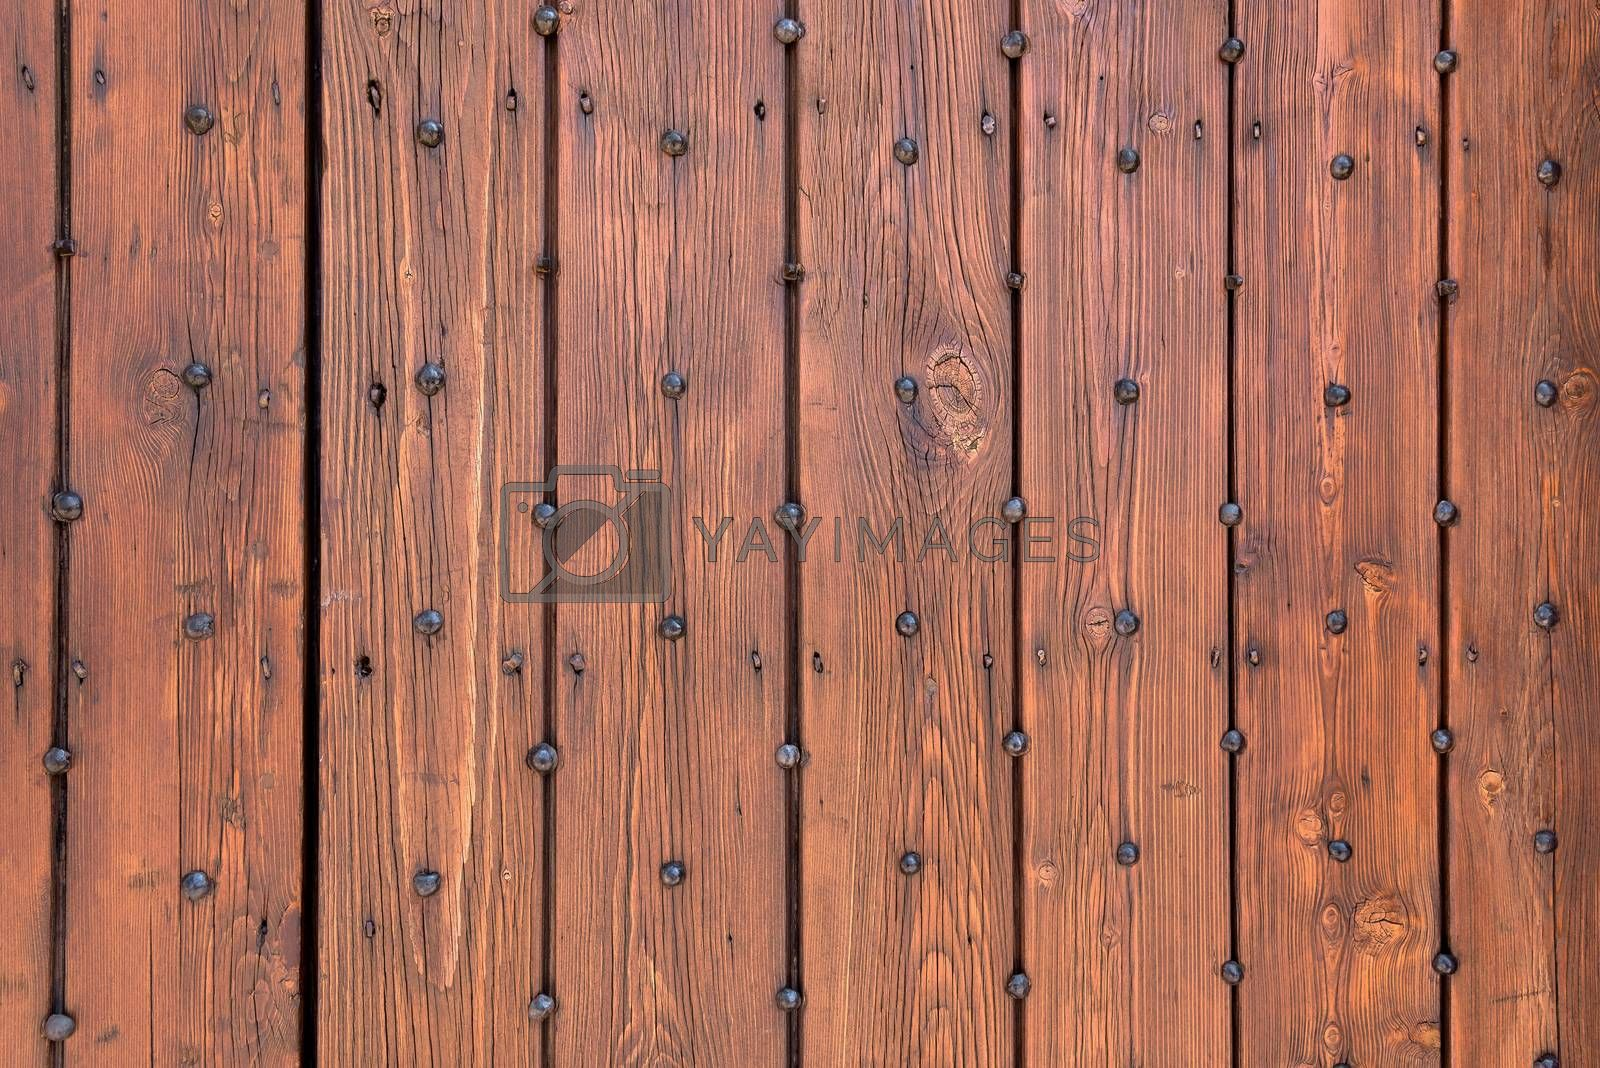 Background or texture made of wooden planks with nails